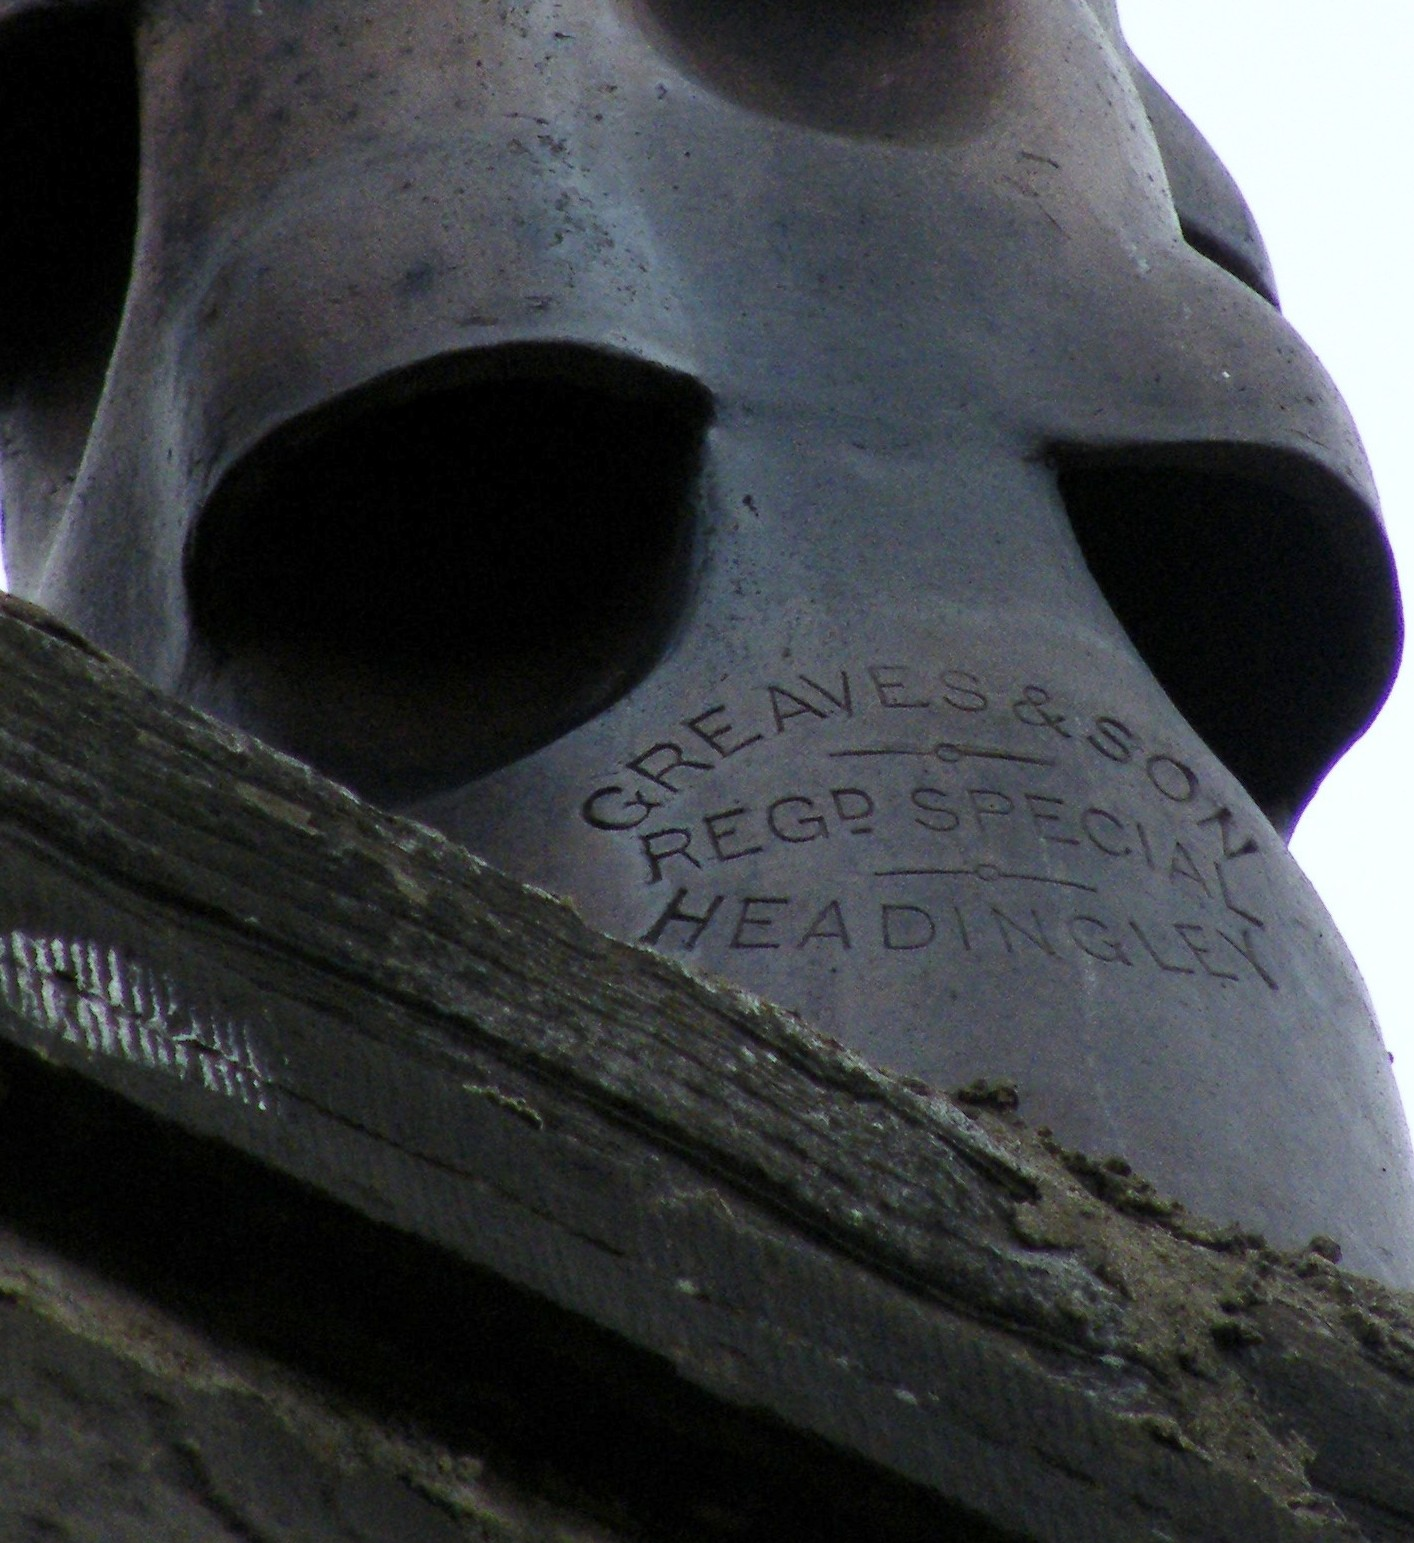 Greaves & Son trade mark on chimney in Headingley, Leed, c. 1890